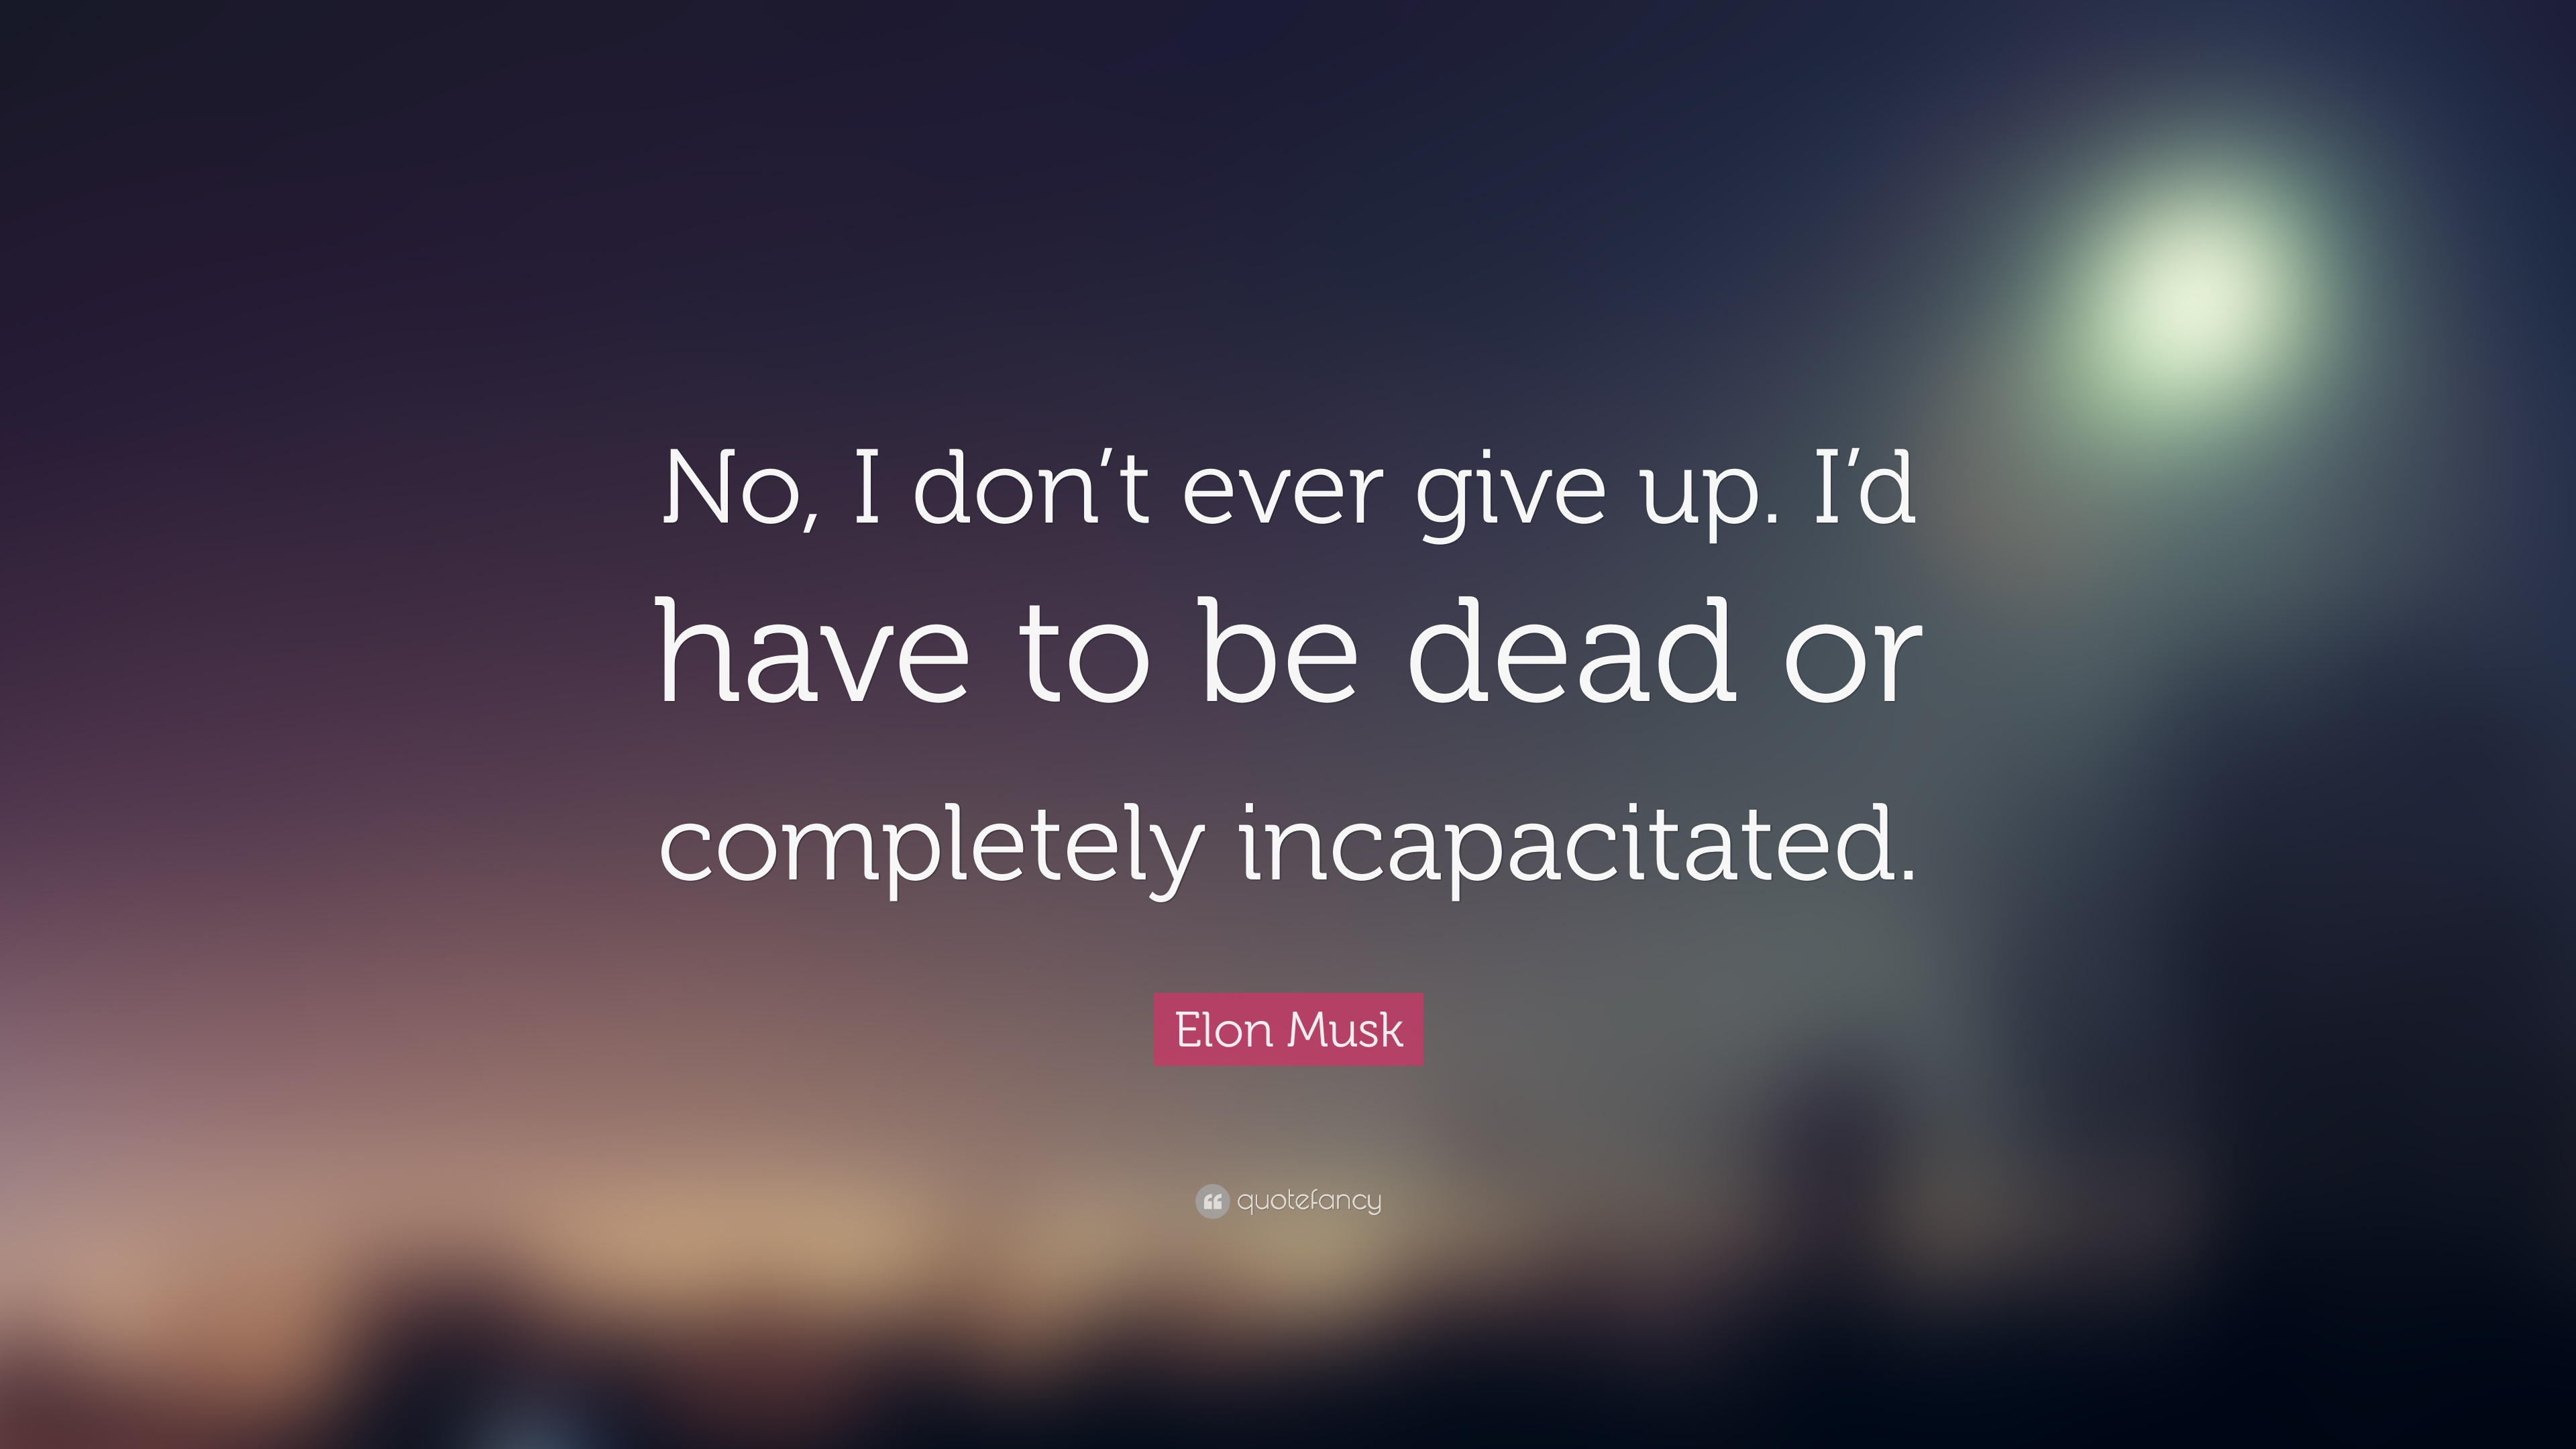 Elon Musk Quote: U201cNo, I Donu0027t Ever Give Up. I